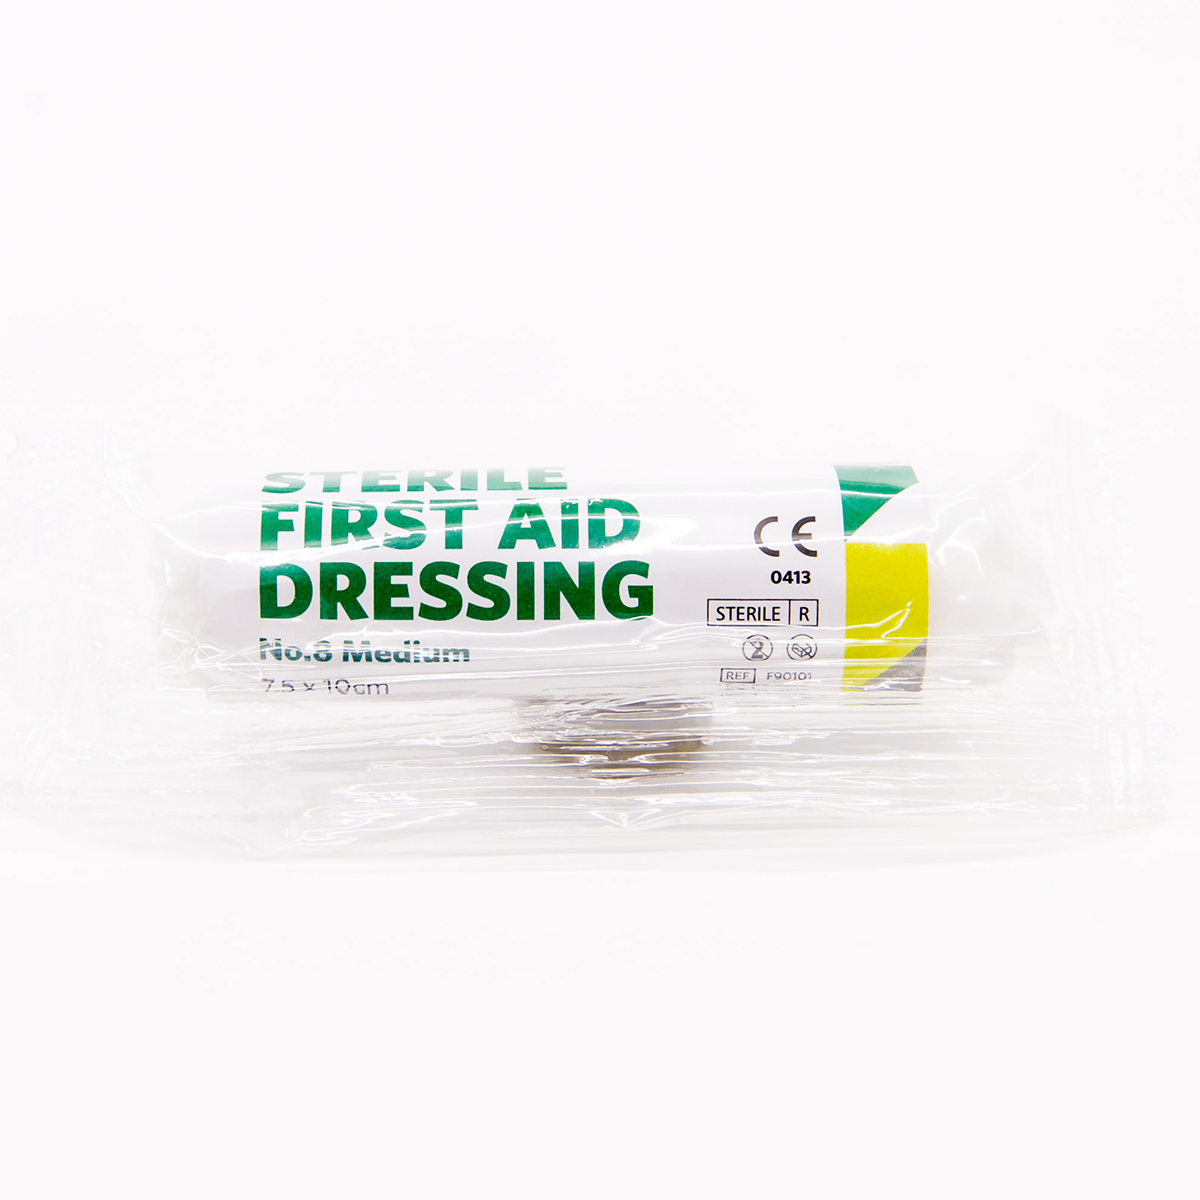 7.5cm x 10cm Medium St John Ambulance No. 8 First Aid Dressing